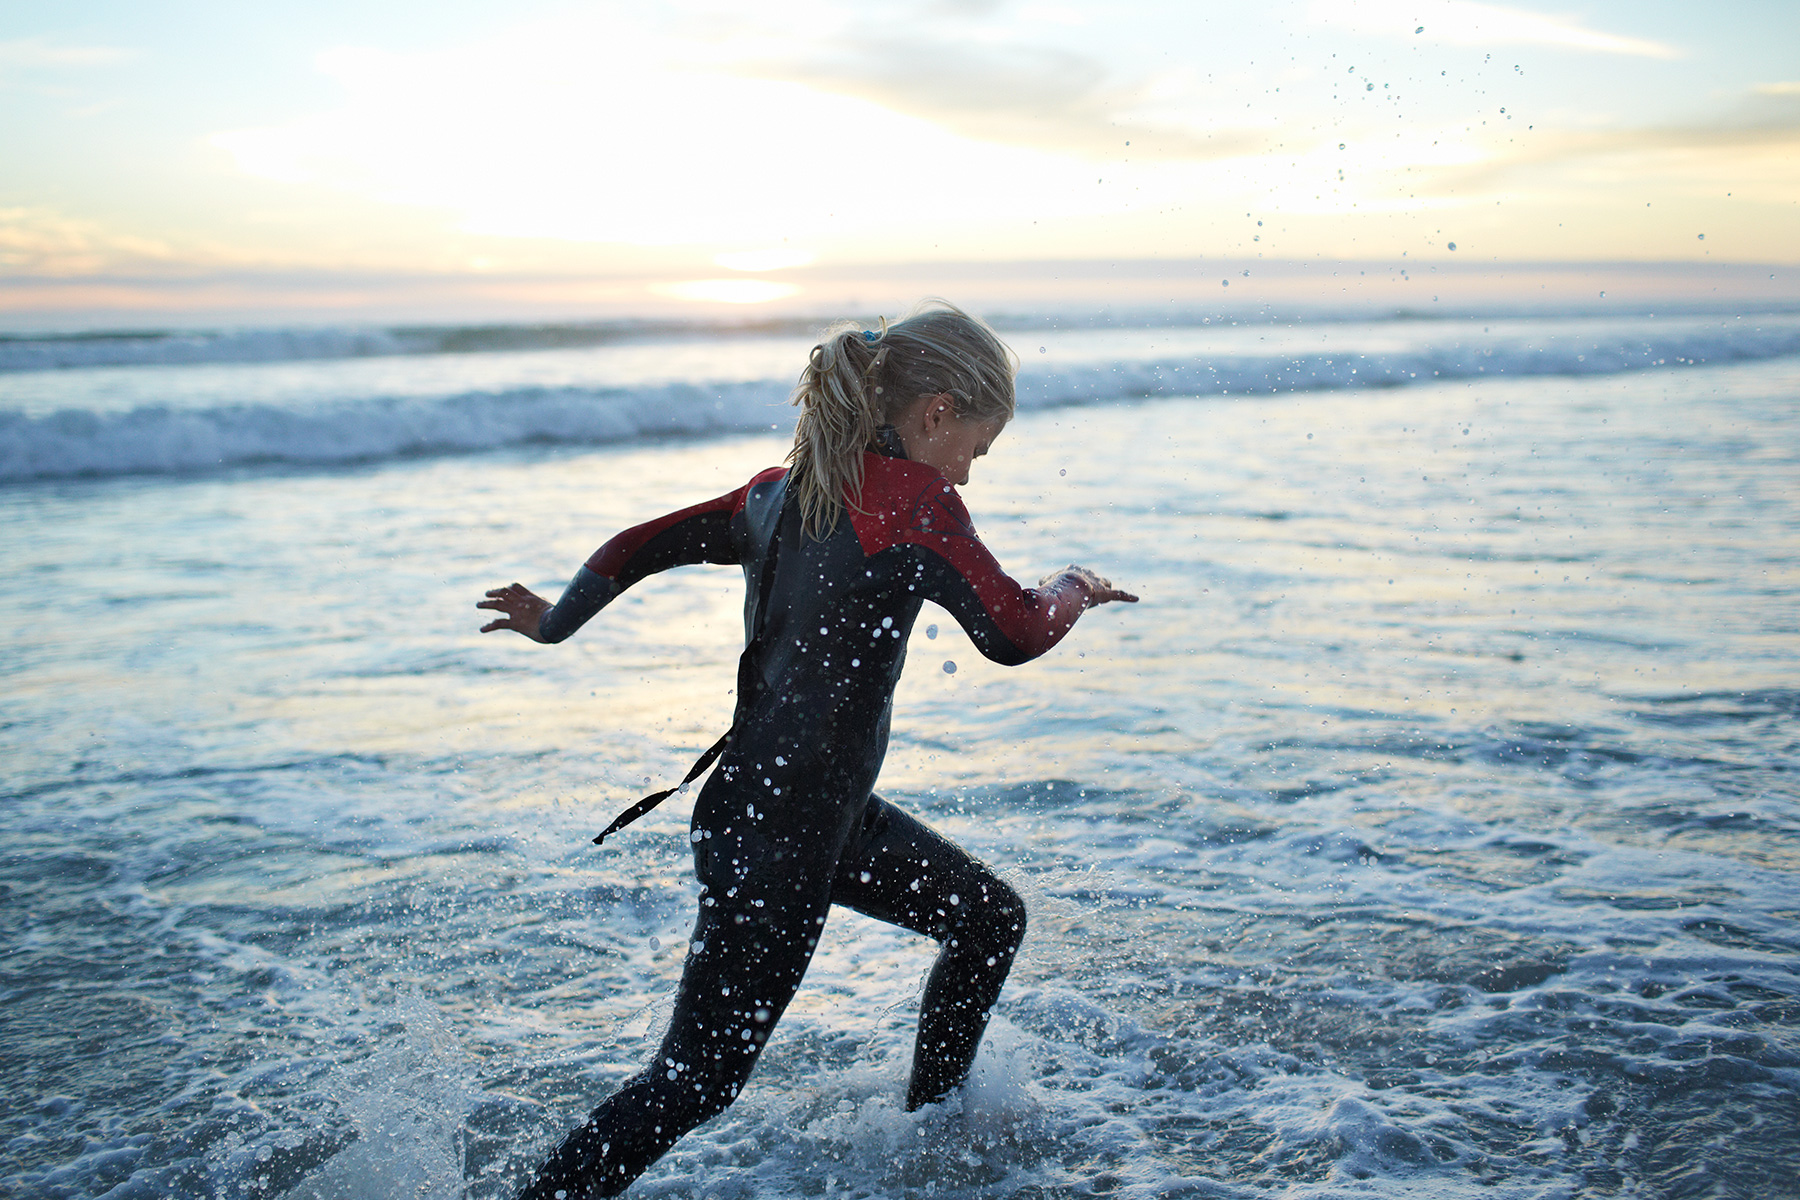 Surfer girl running in ocean